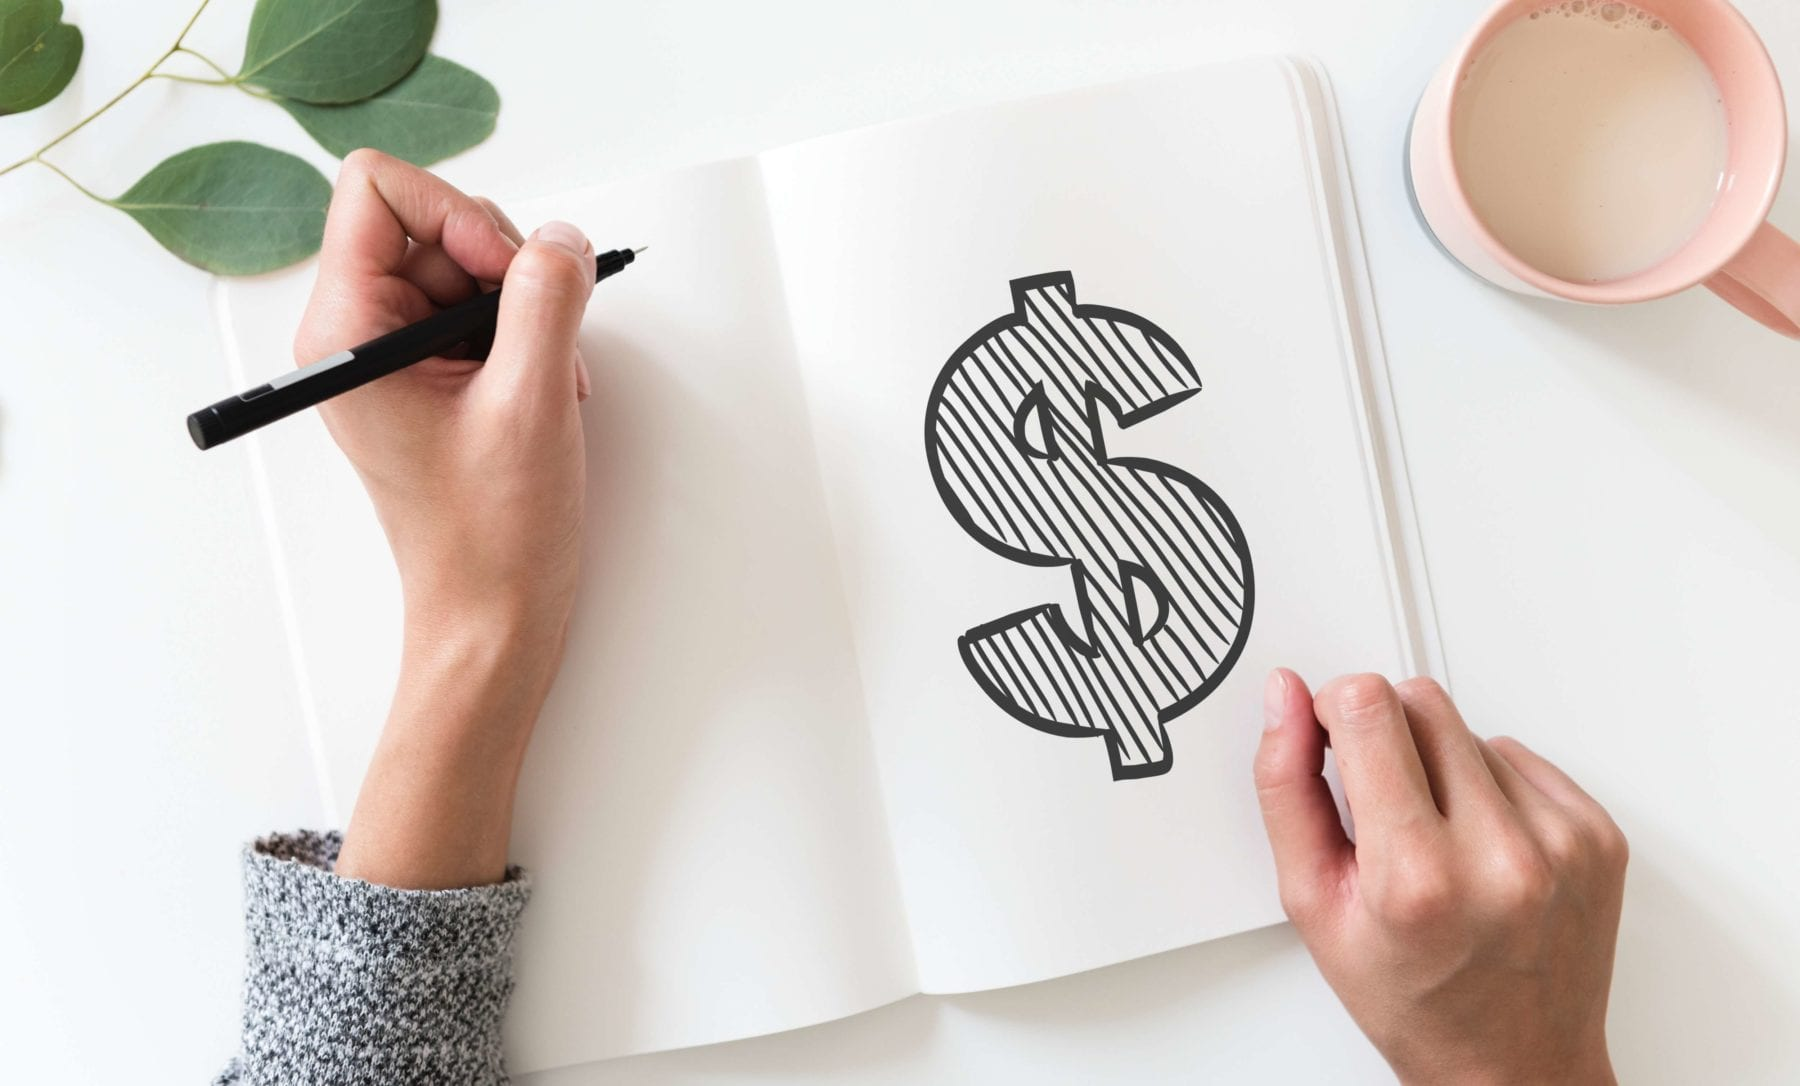 Woman drawing money sign in notebook - Photo by rawpixel on Unsplash